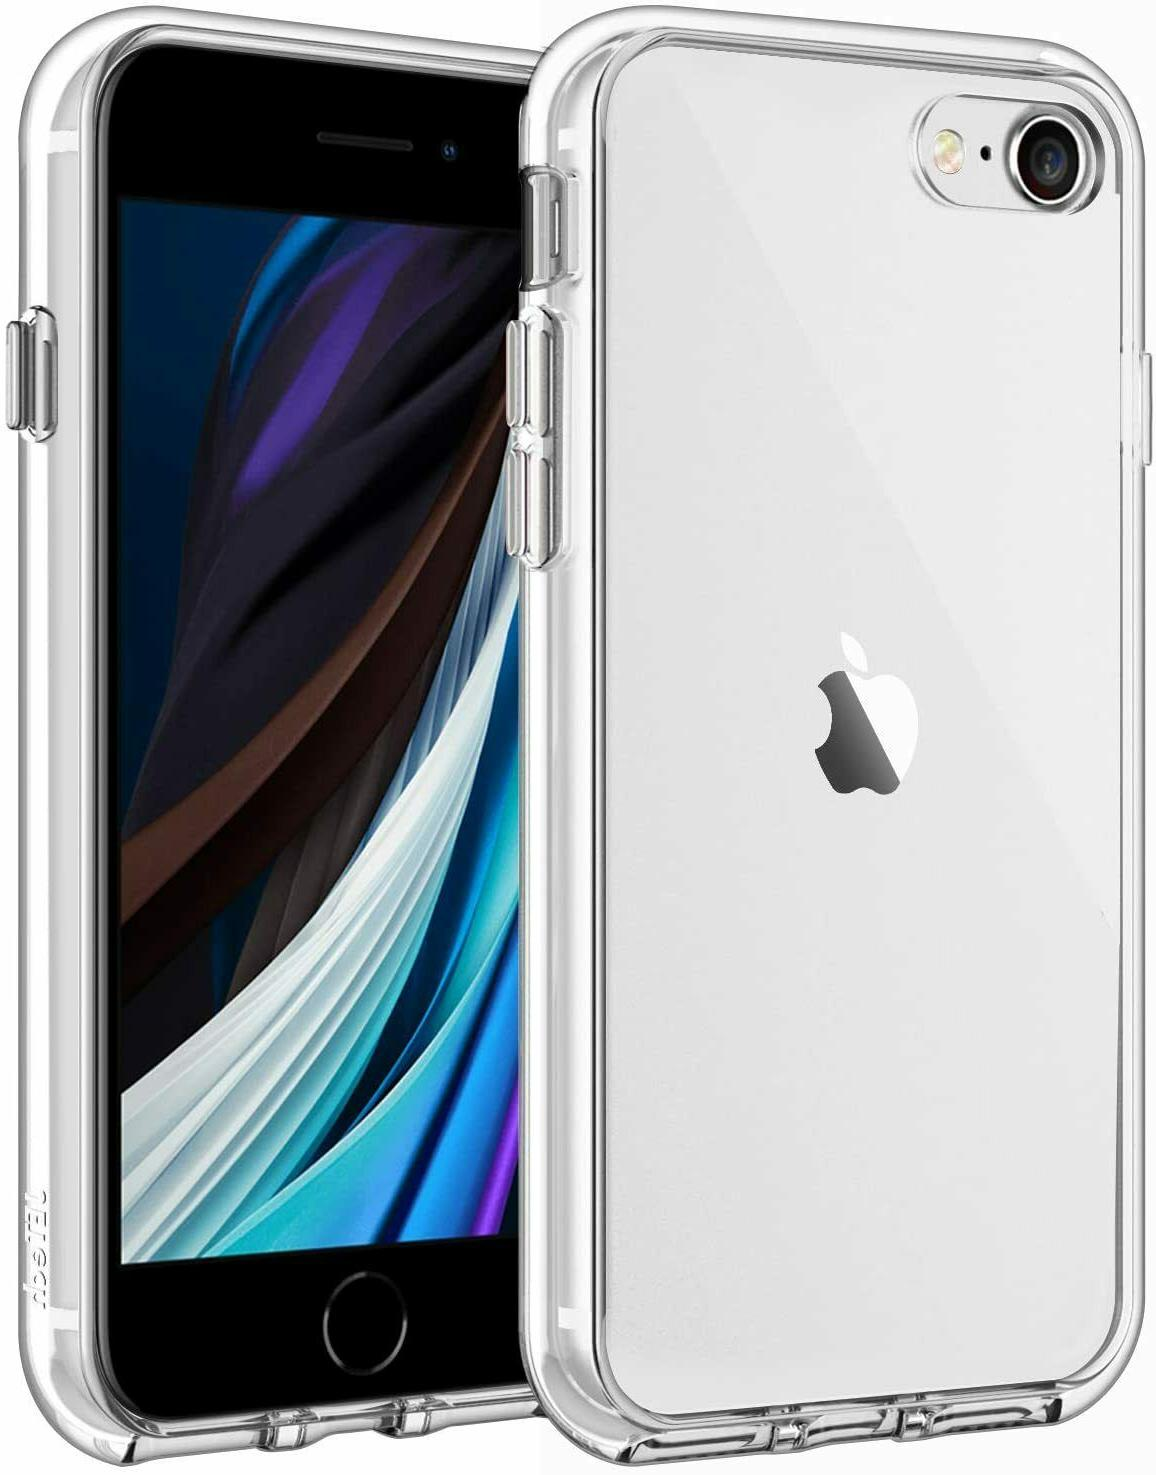 Case for Apple iPhone SE 2020 2nd Generation, iPhone 8 and i